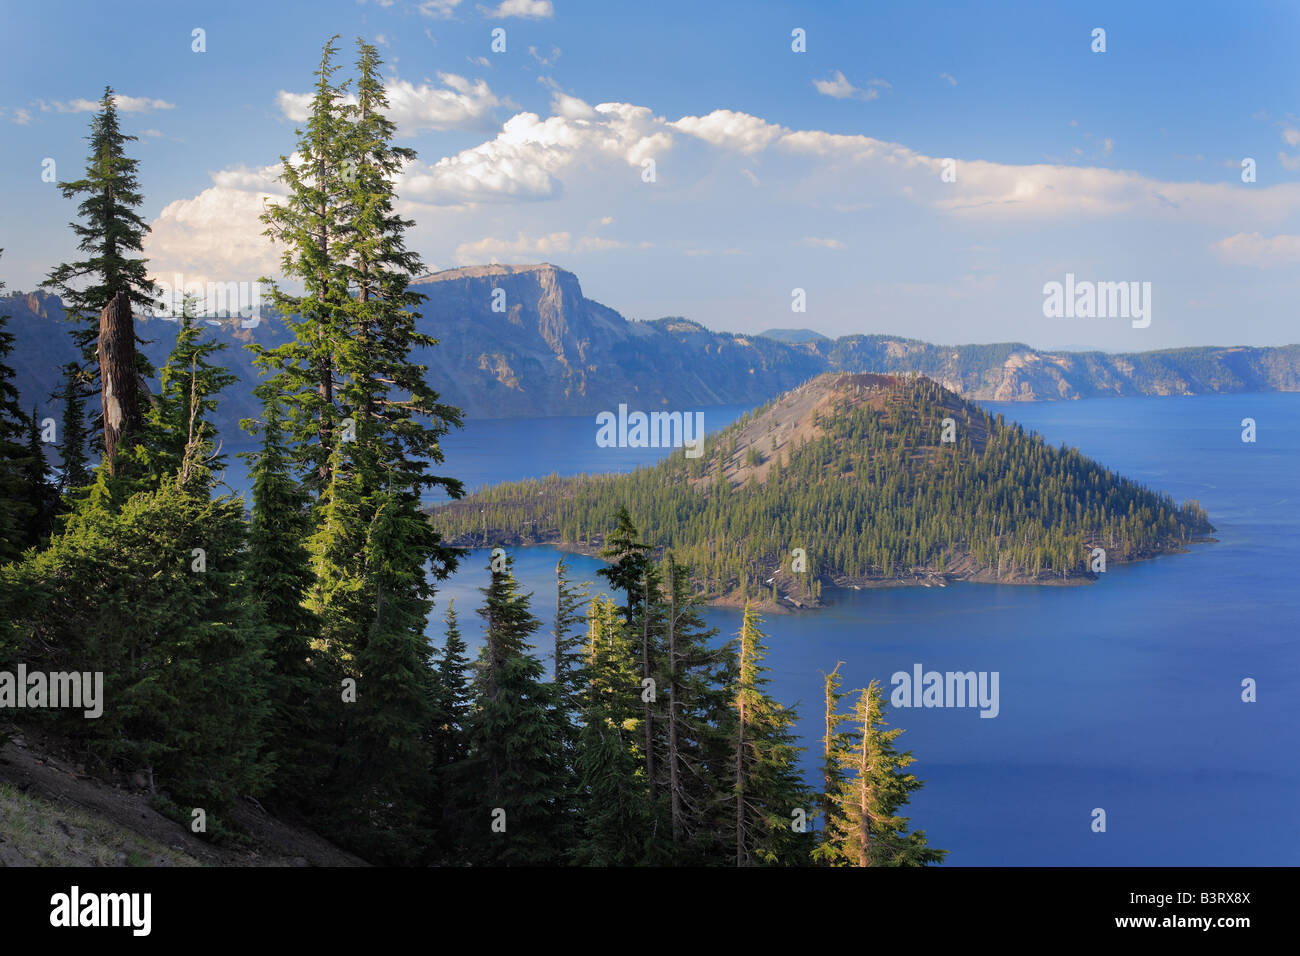 Wizard Island in Crater Lake national park, Oregon - Stock Image